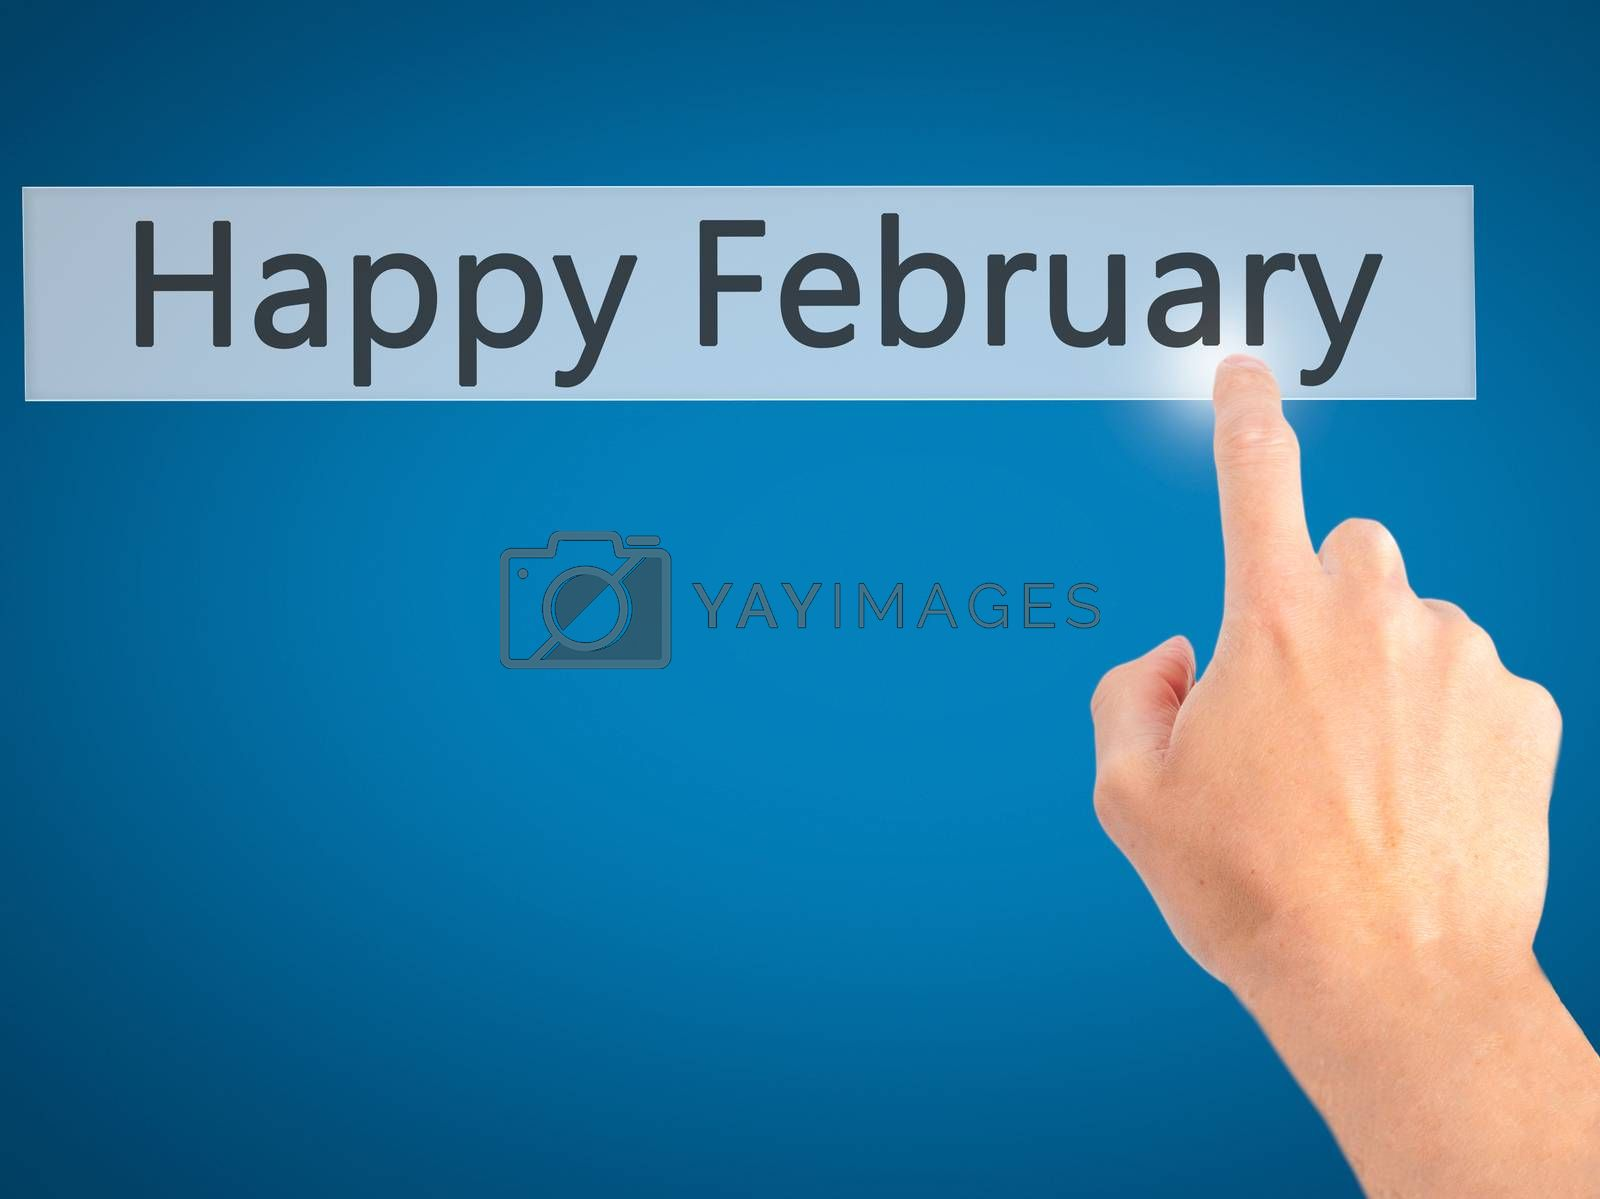 Happy February - Hand pressing a button on blurred background co by jackald